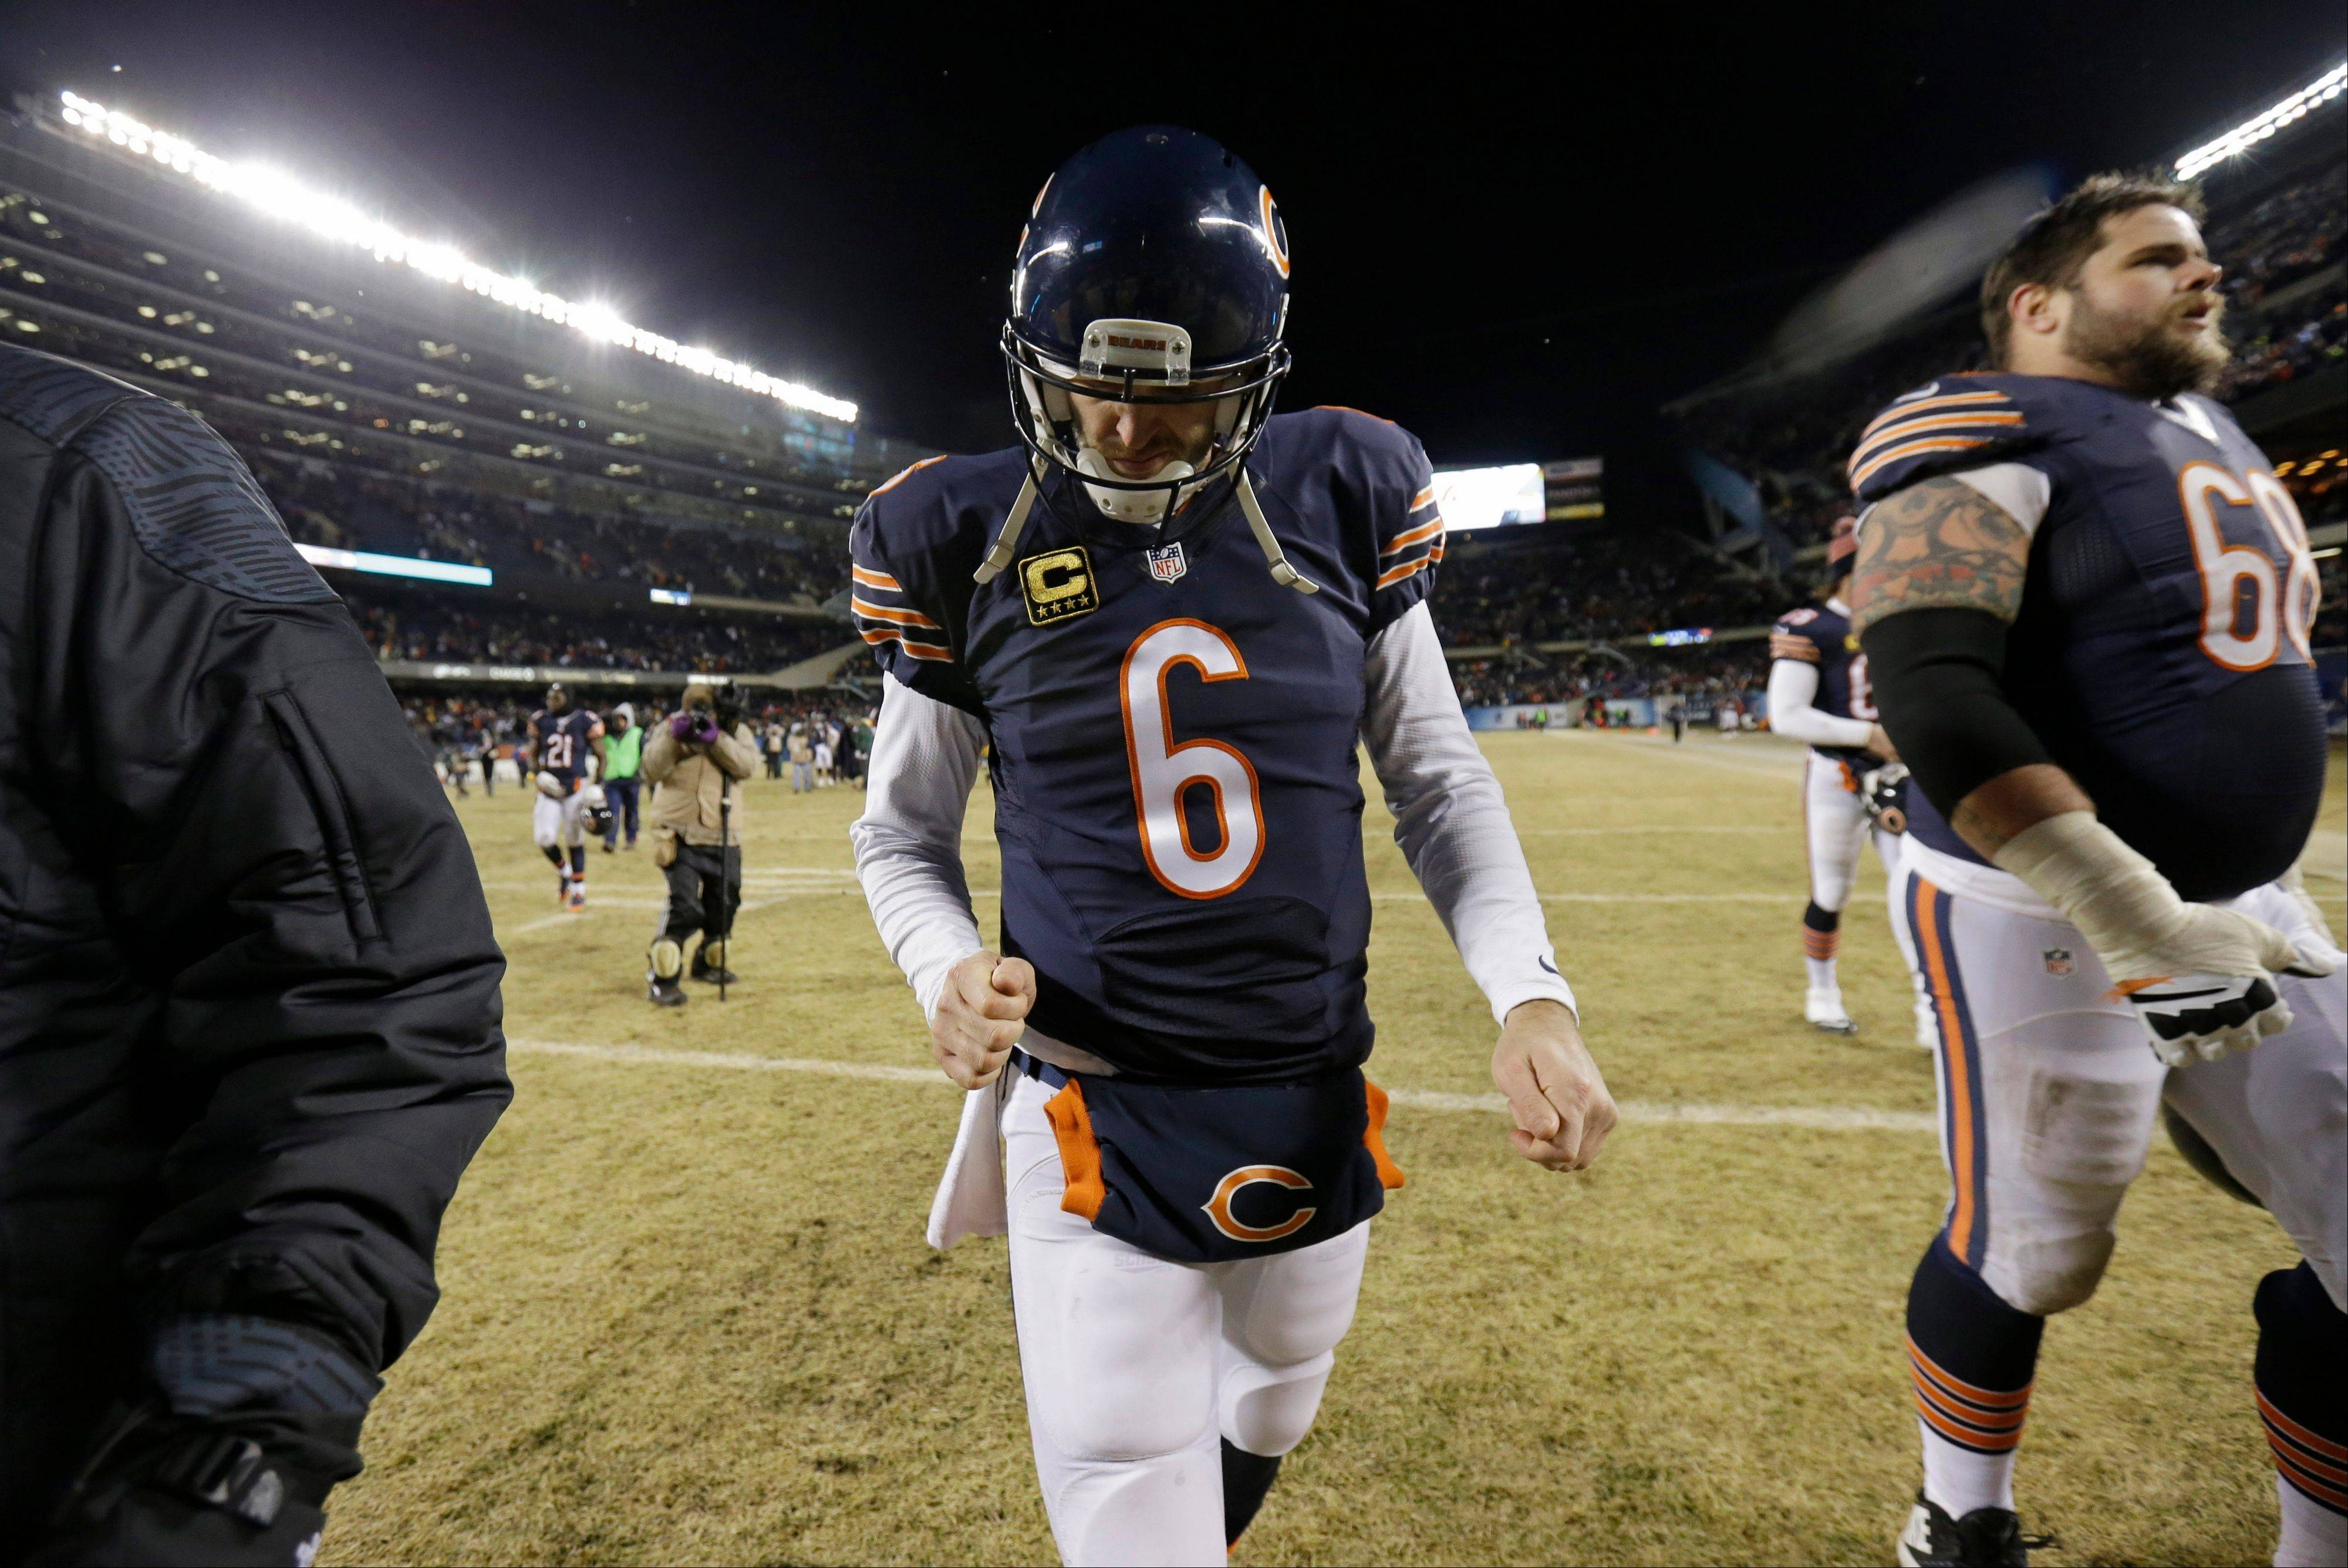 If Cutler isn't elite, no reason for Bears to pay him elite money